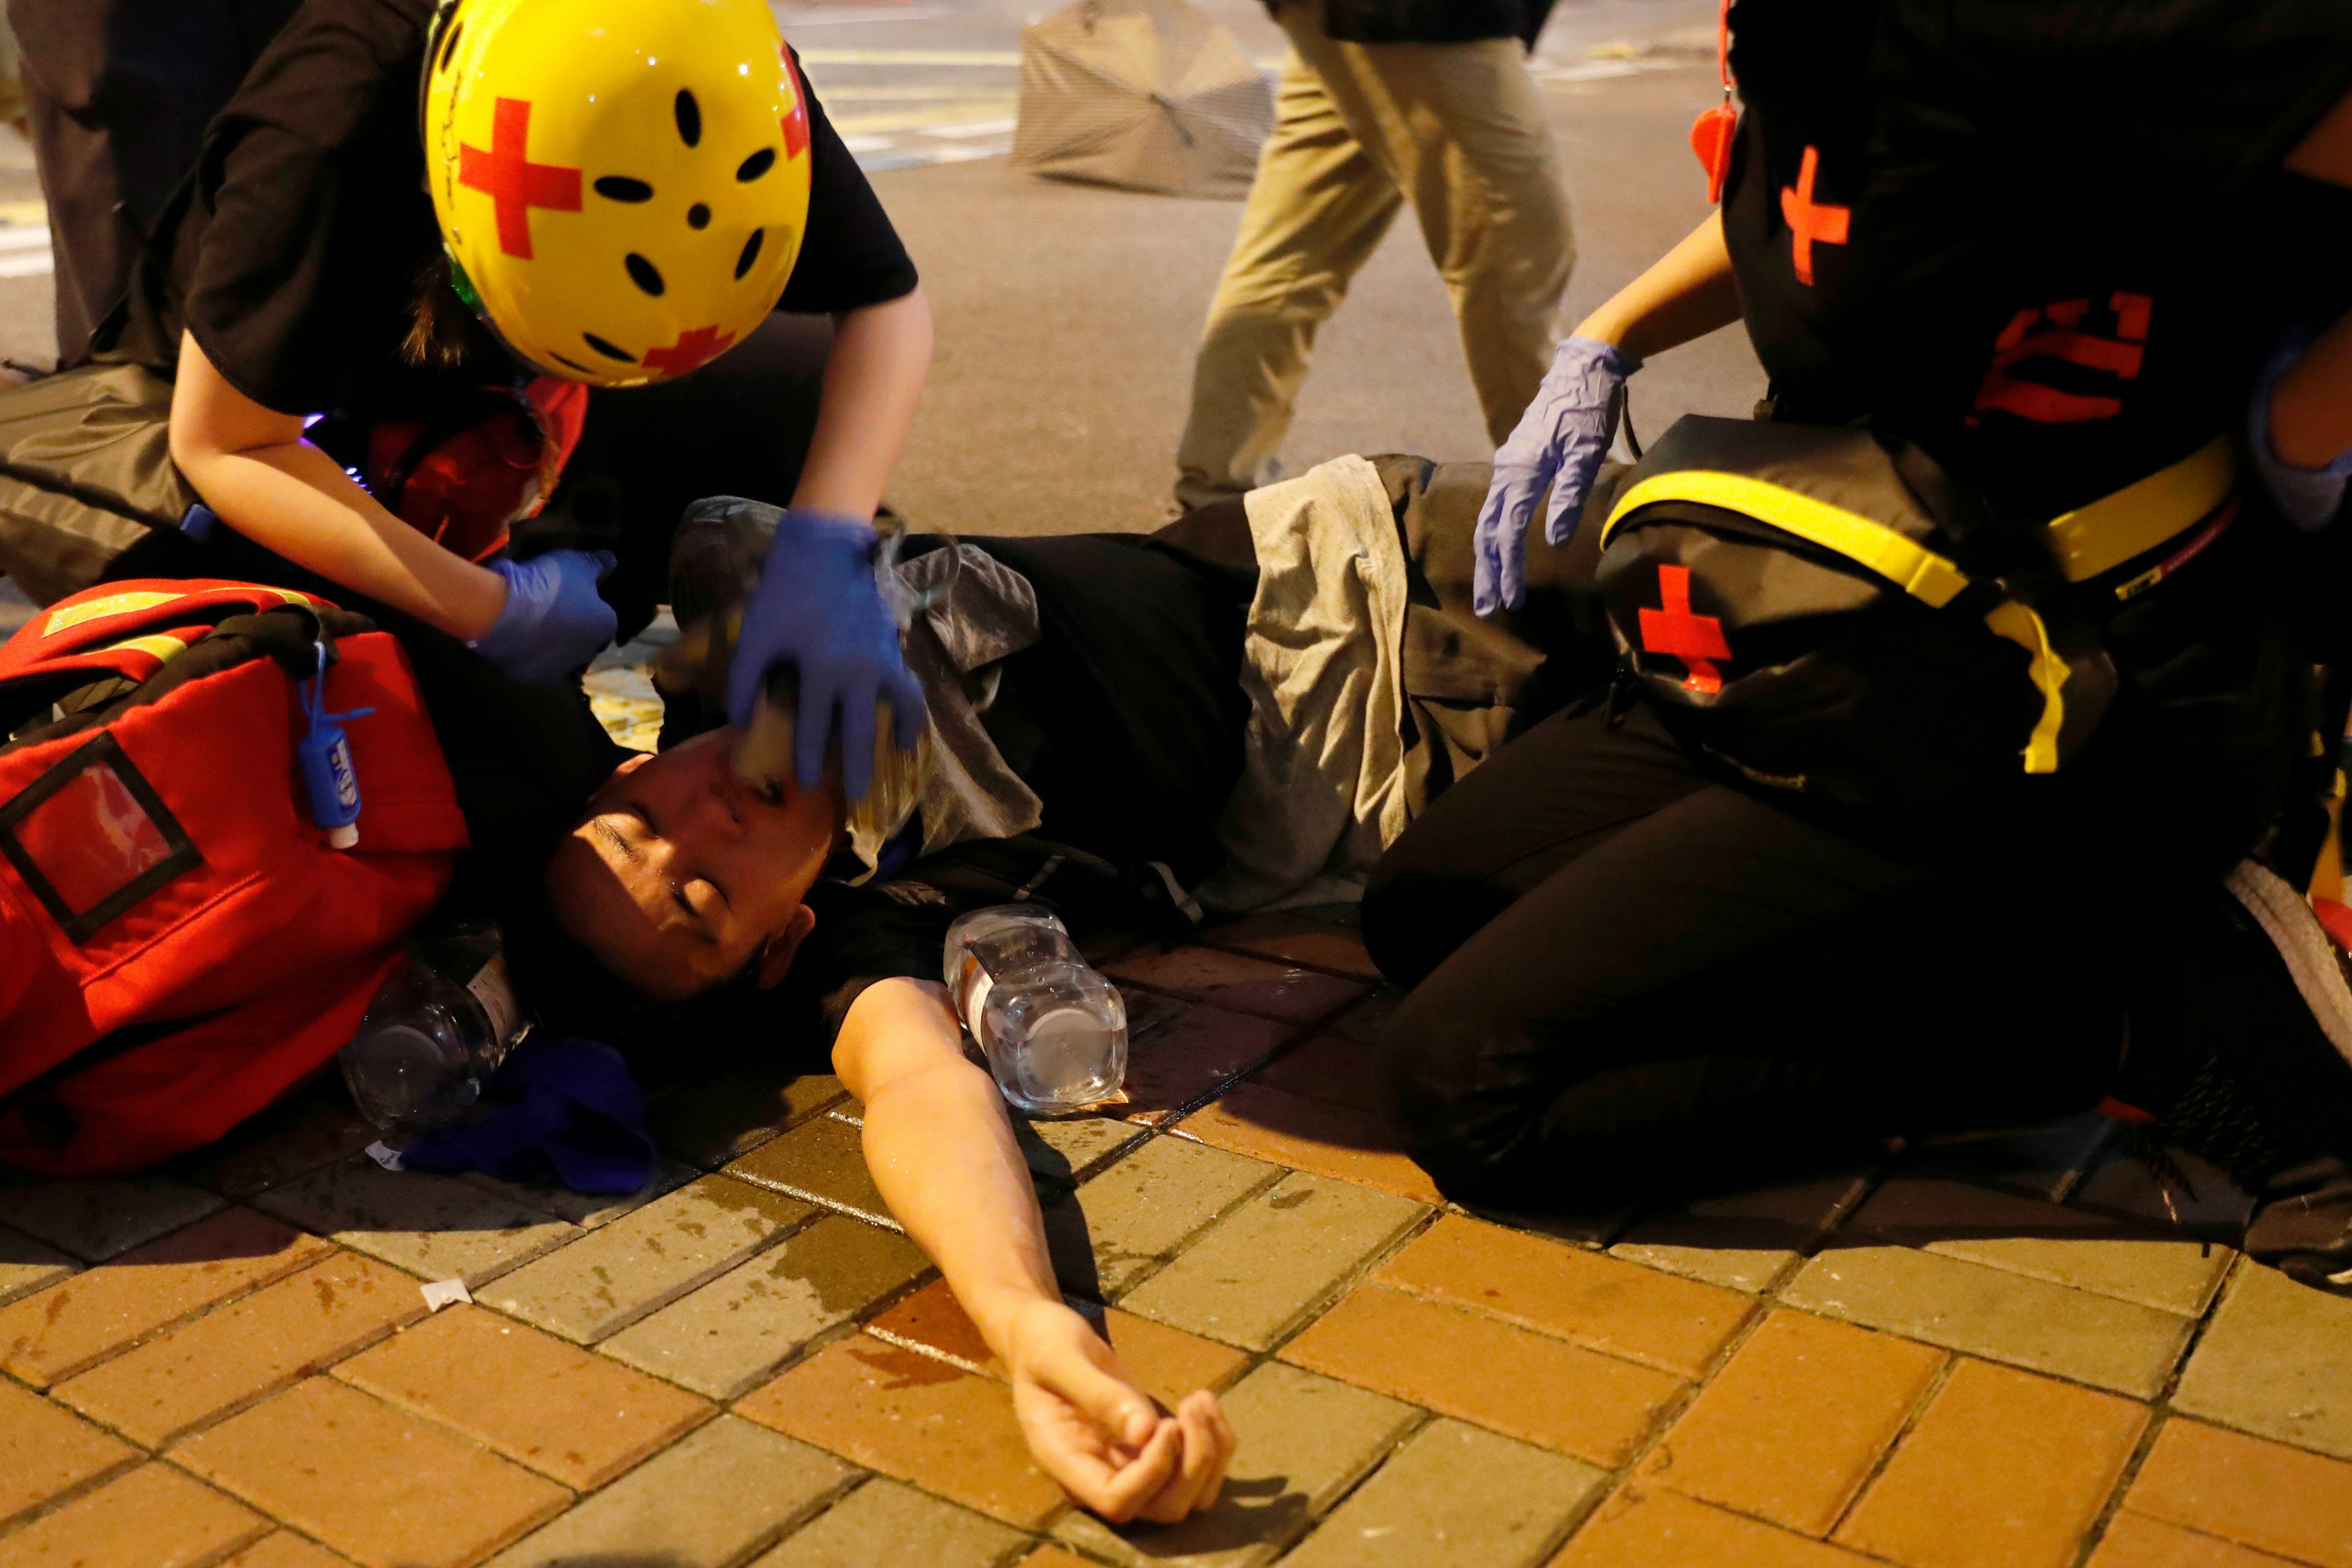 An anti-extradition bill demonstrator receives medical attention after riot police fire tear gas after a march to call for democratic reforms, in Hong Kong